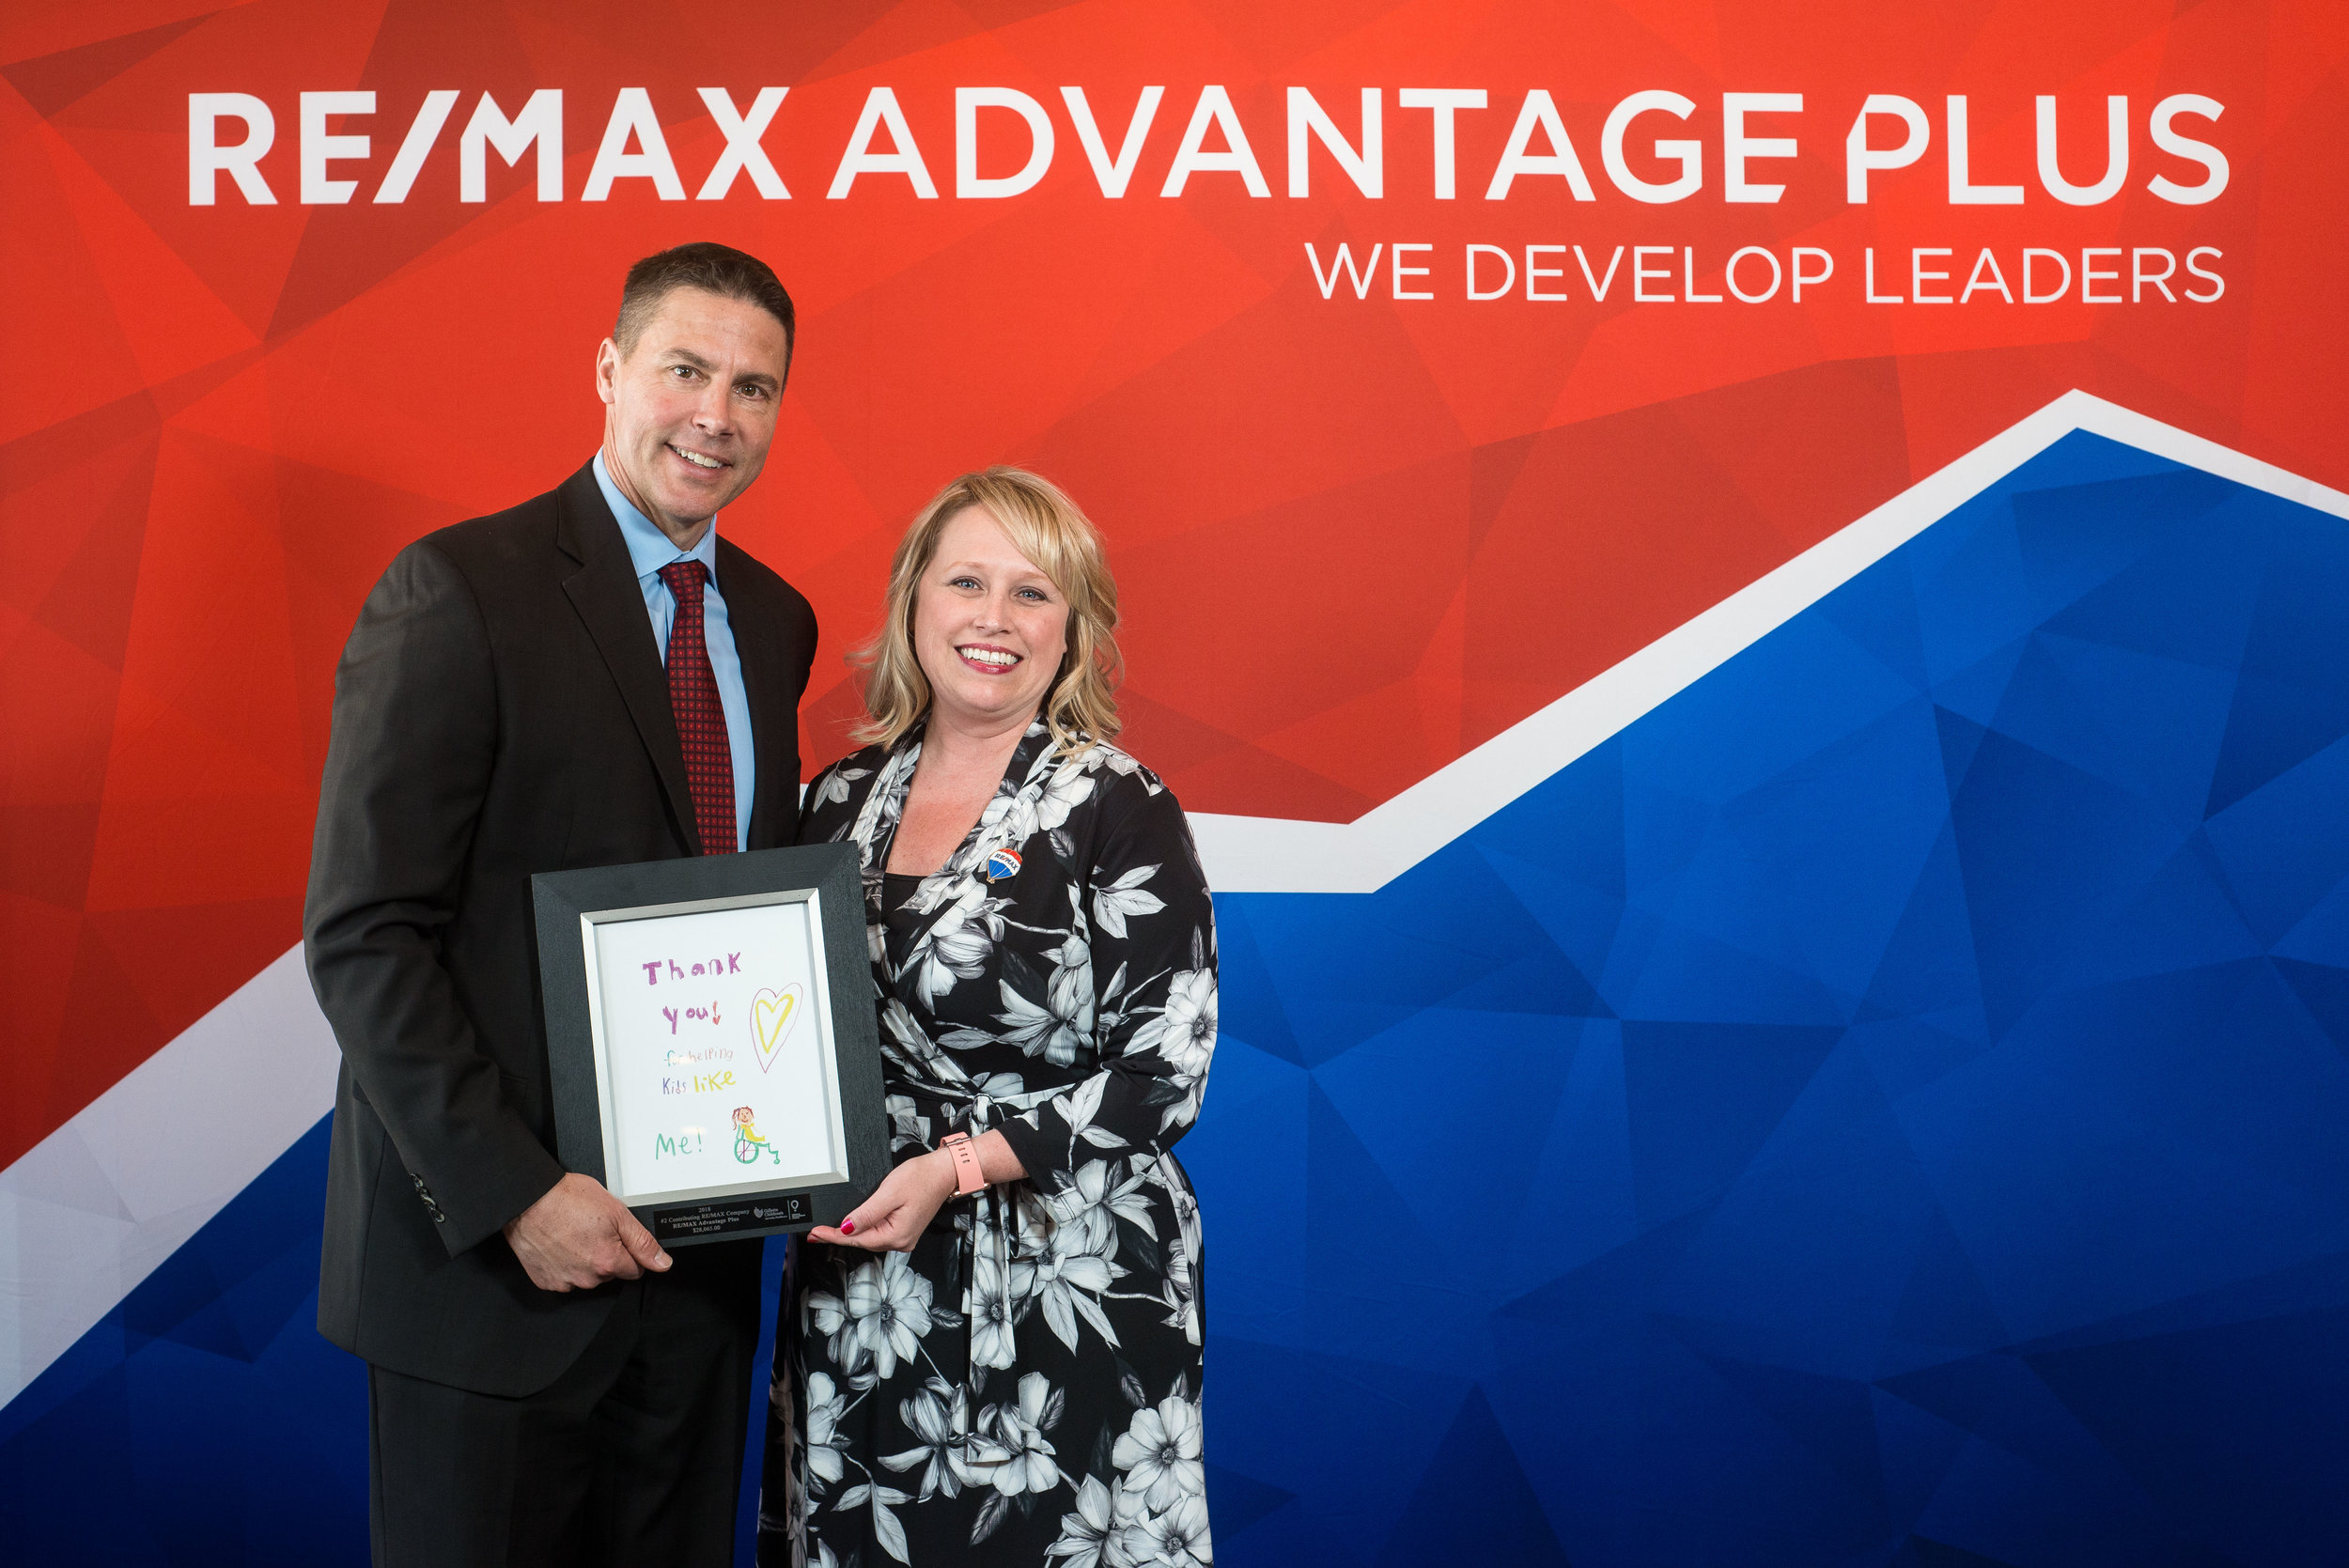 Last year, RE/MAX Advantage Plus associates donated $28,065 to the Children's Miracle Network Hospitals